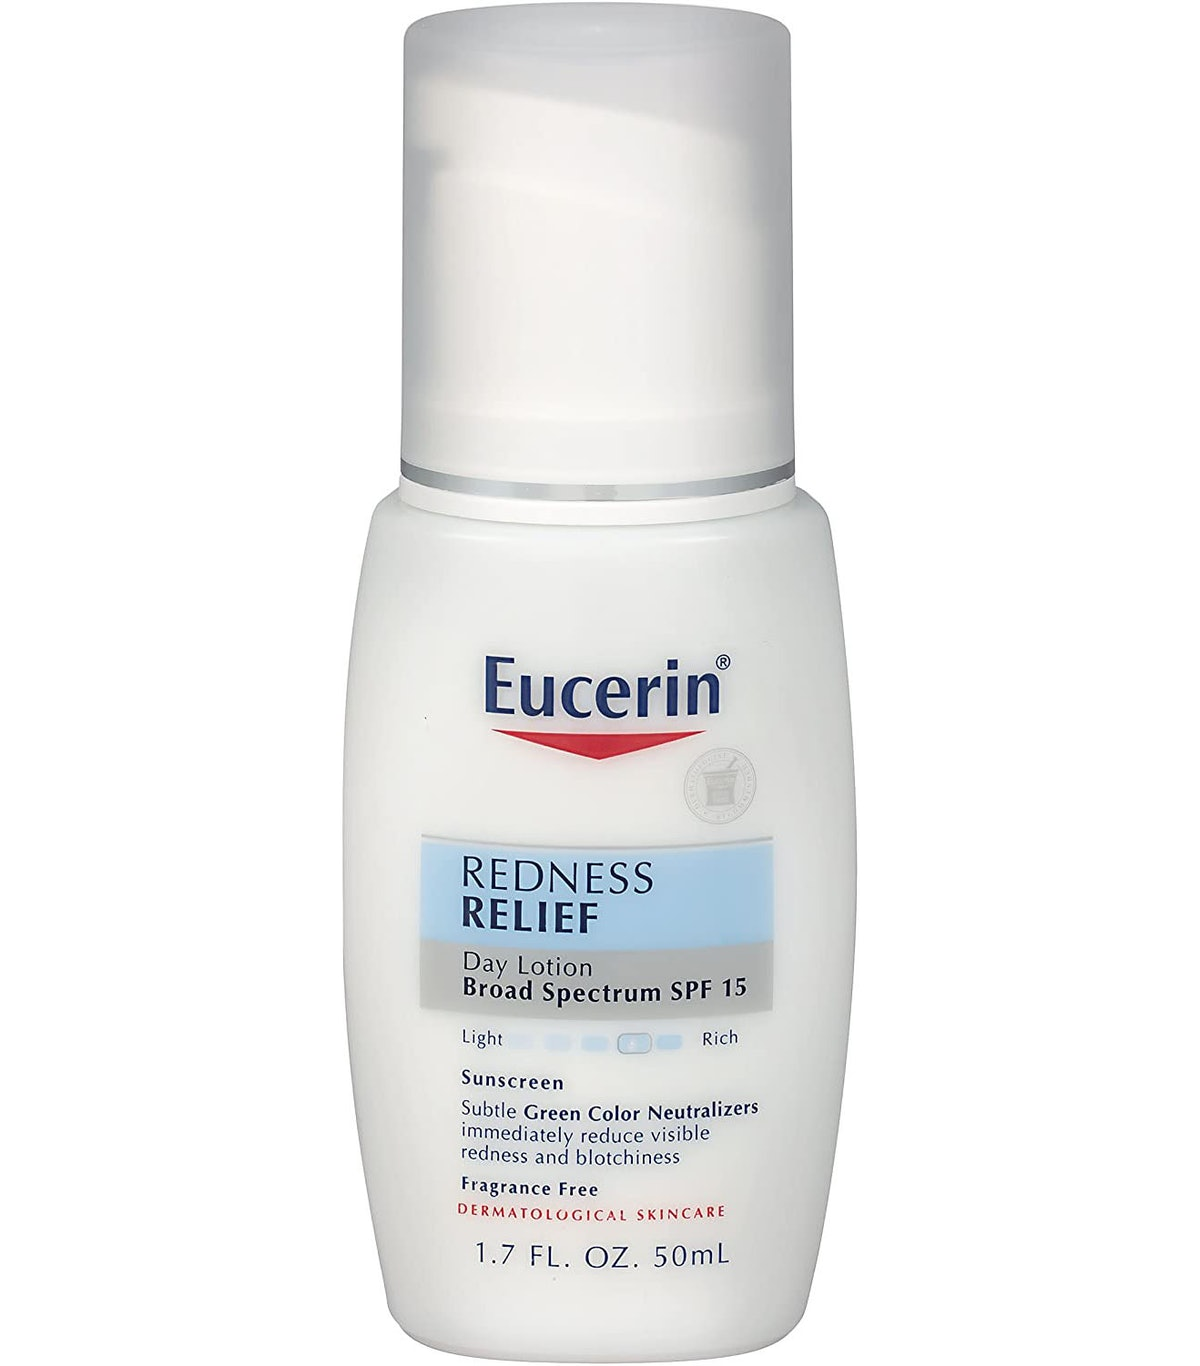 Eucerin Redness Relief Day Lotion